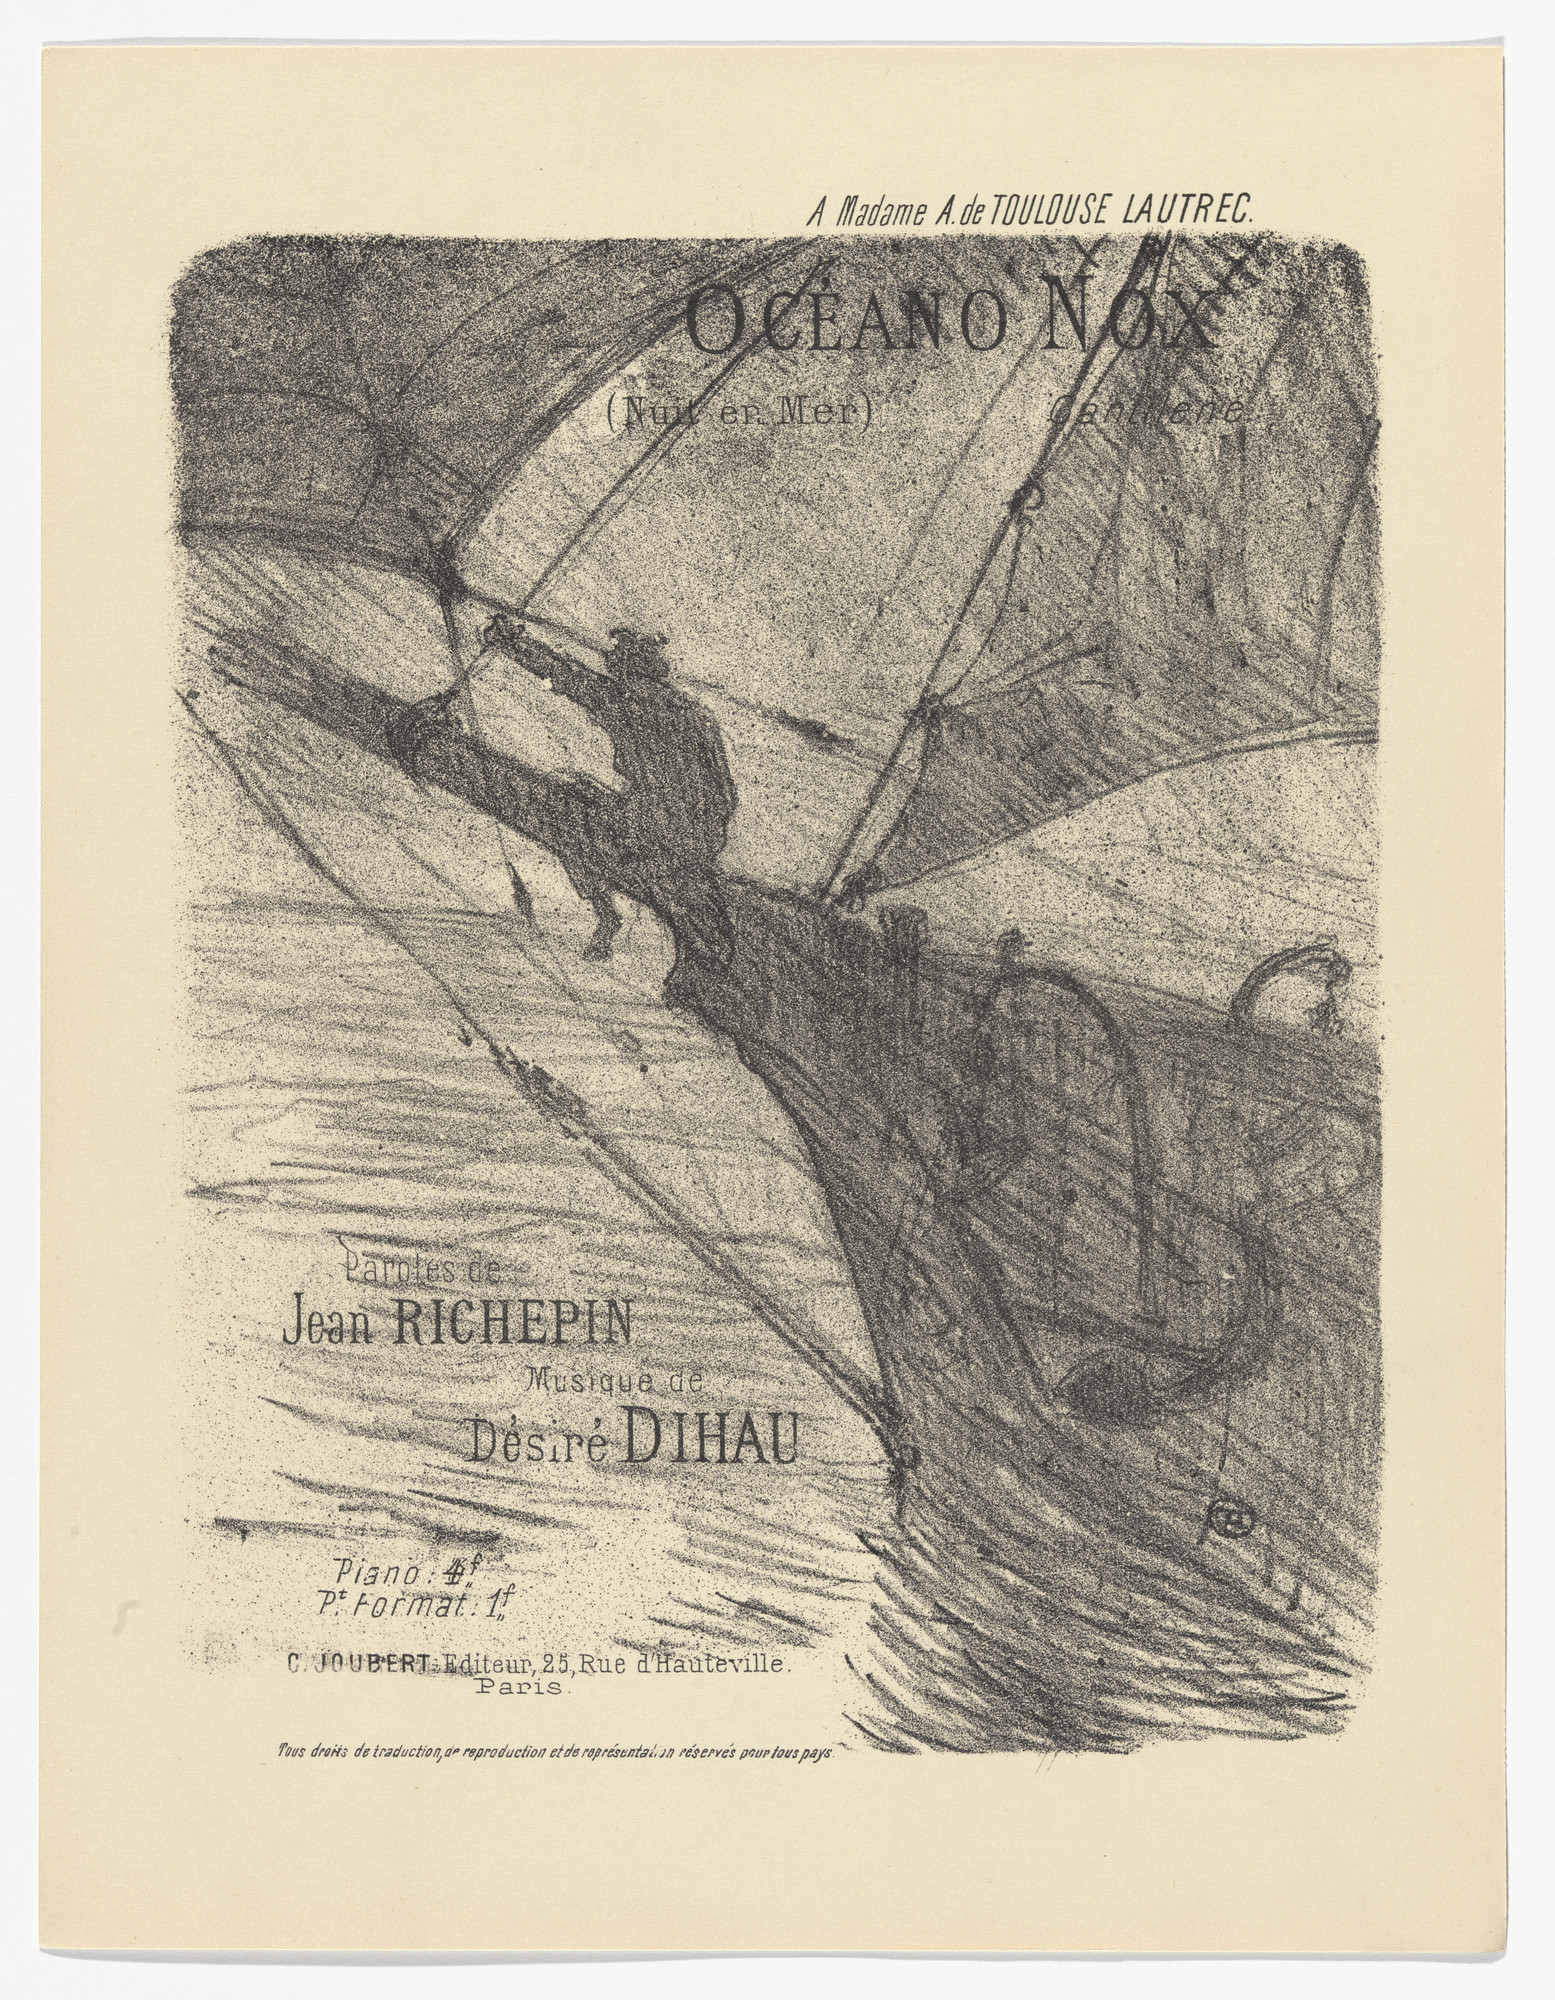 Henri de Toulouse-Lautrec. Night at Sea (Oceano nox) from Quatorze lithographies originales (Mélodies de Désiré Dihau). 1895, published 1935